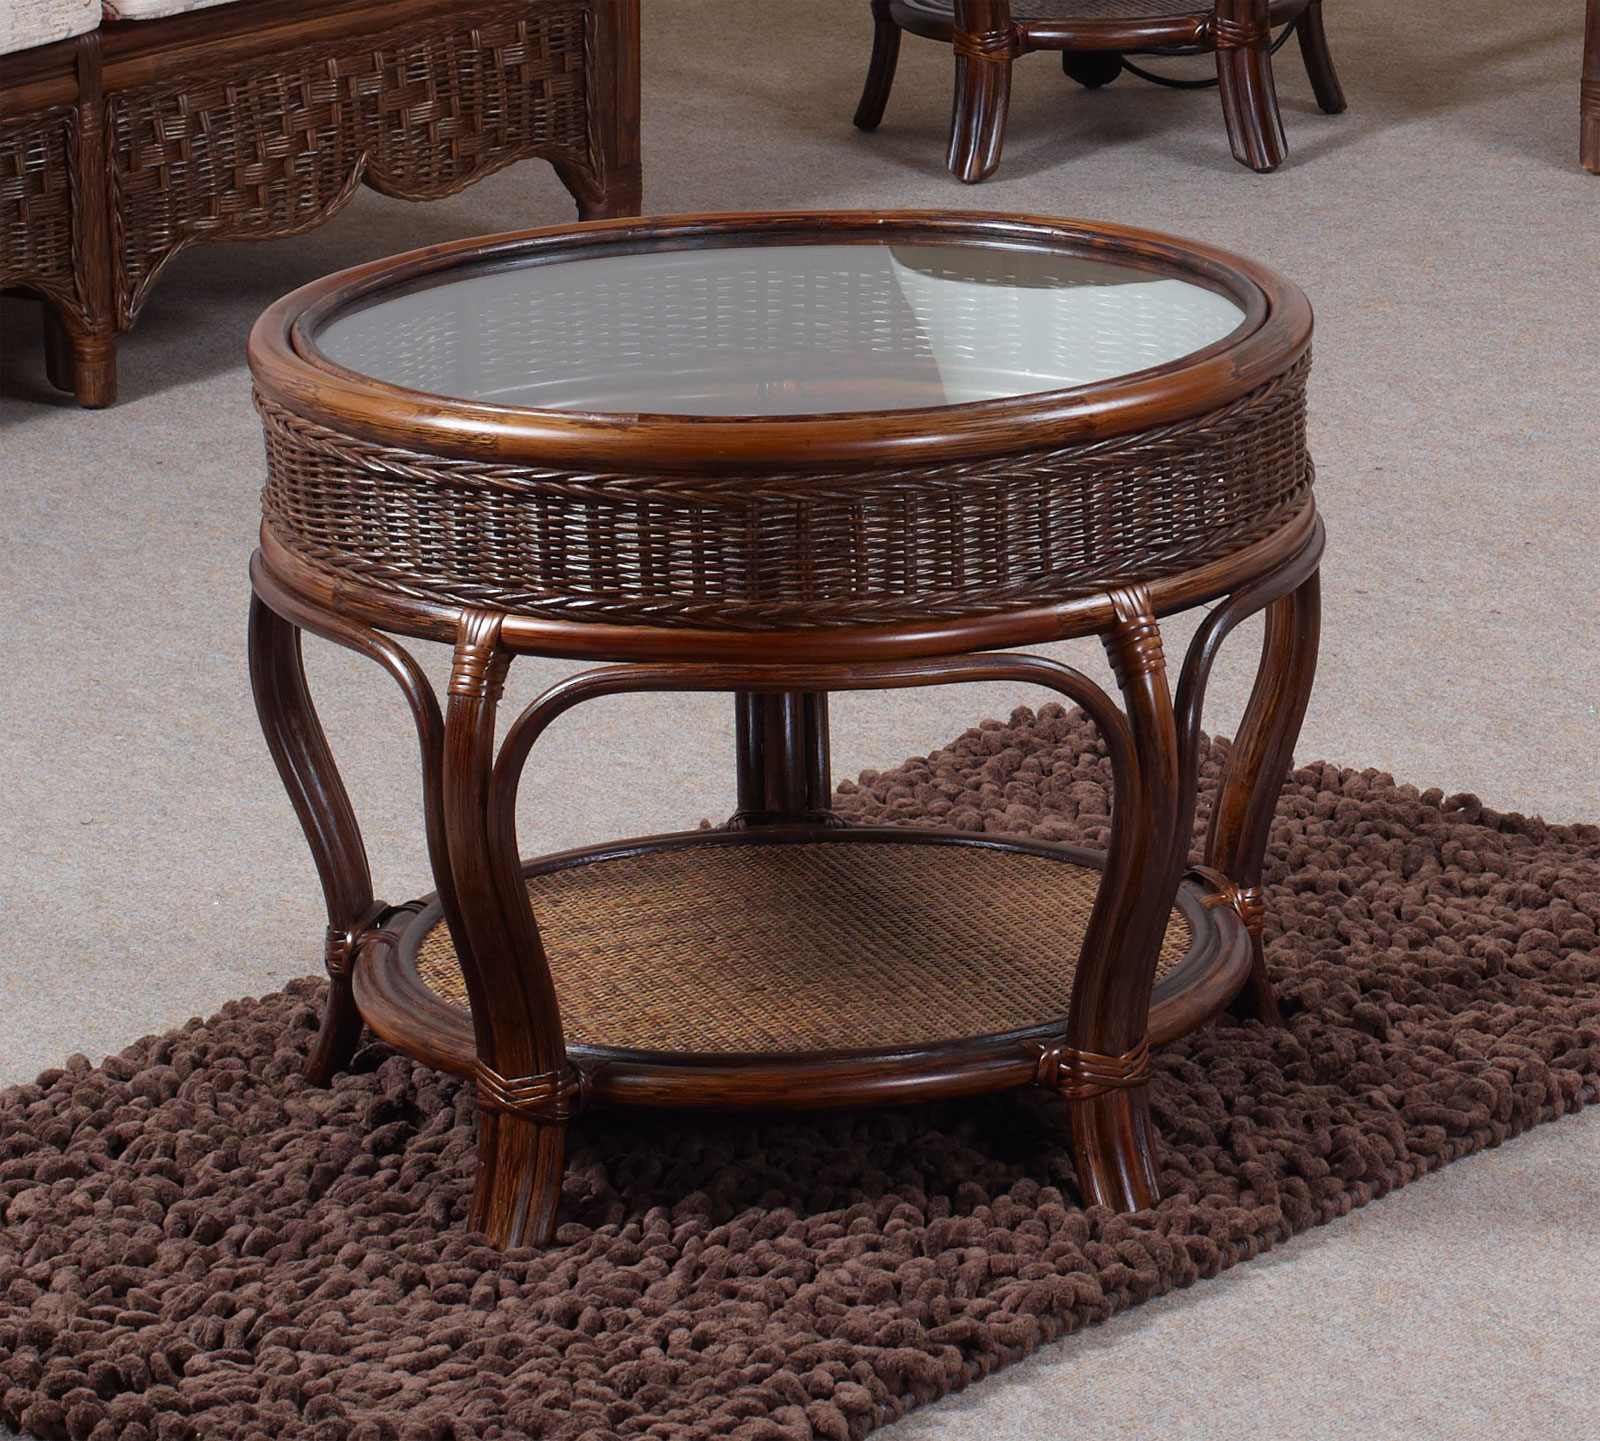 Sepang Conservatory Cane Furniture Round Glass Coffee Table Ebay